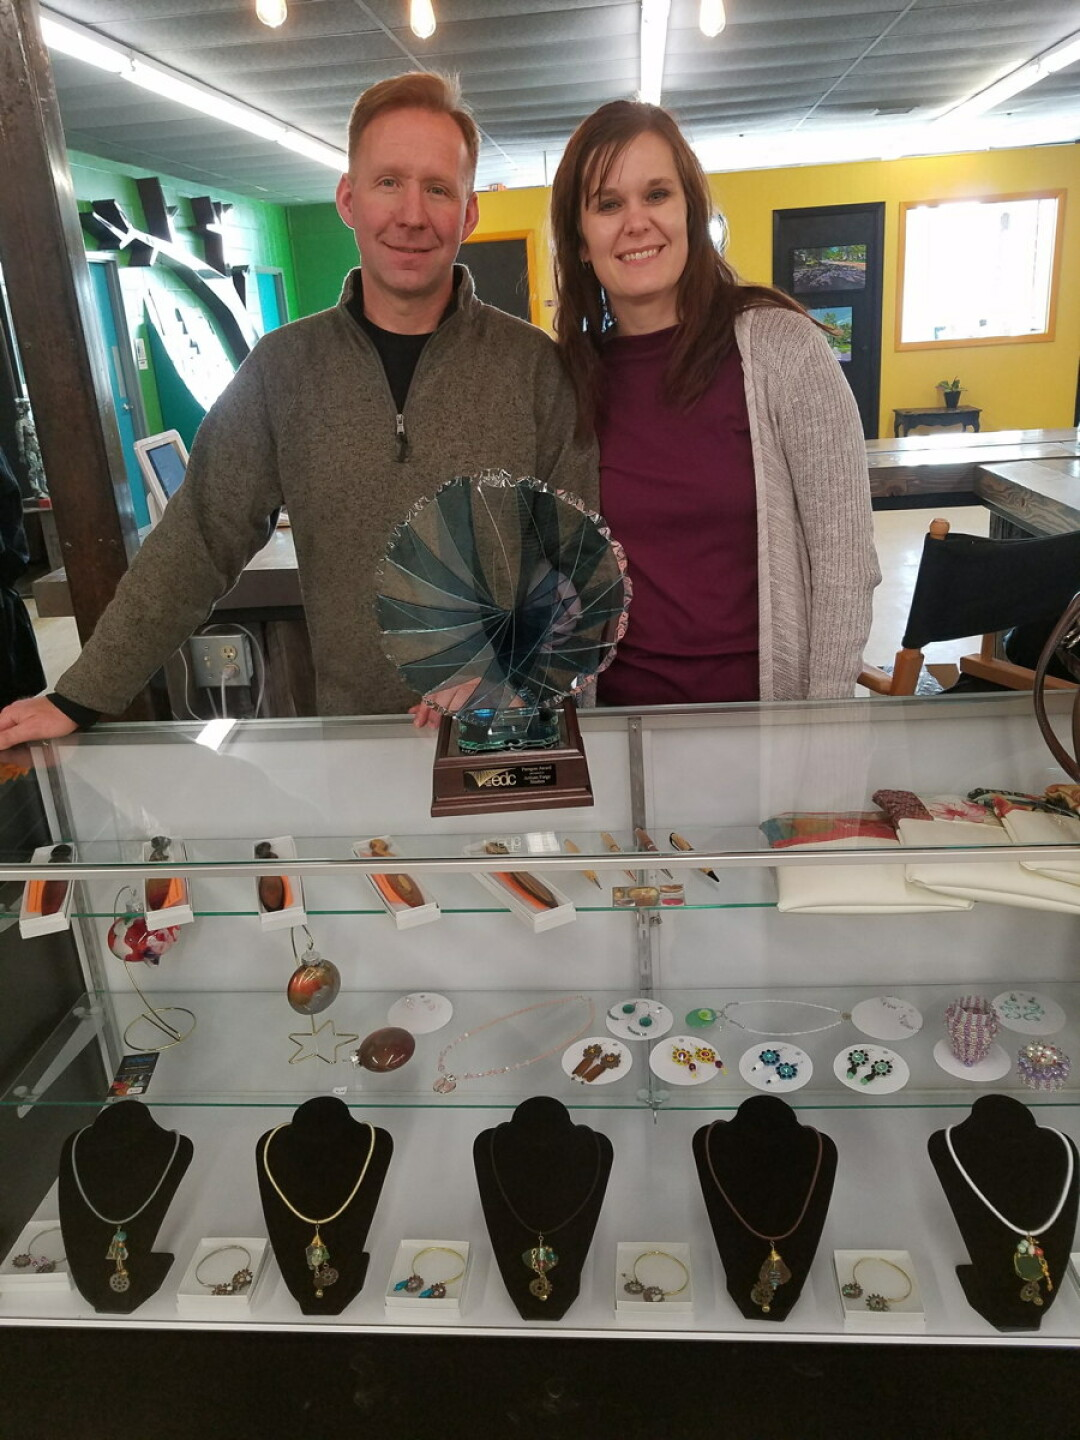 artisan forge founder greg johnson and his wife, krista, pose with the paragon award.